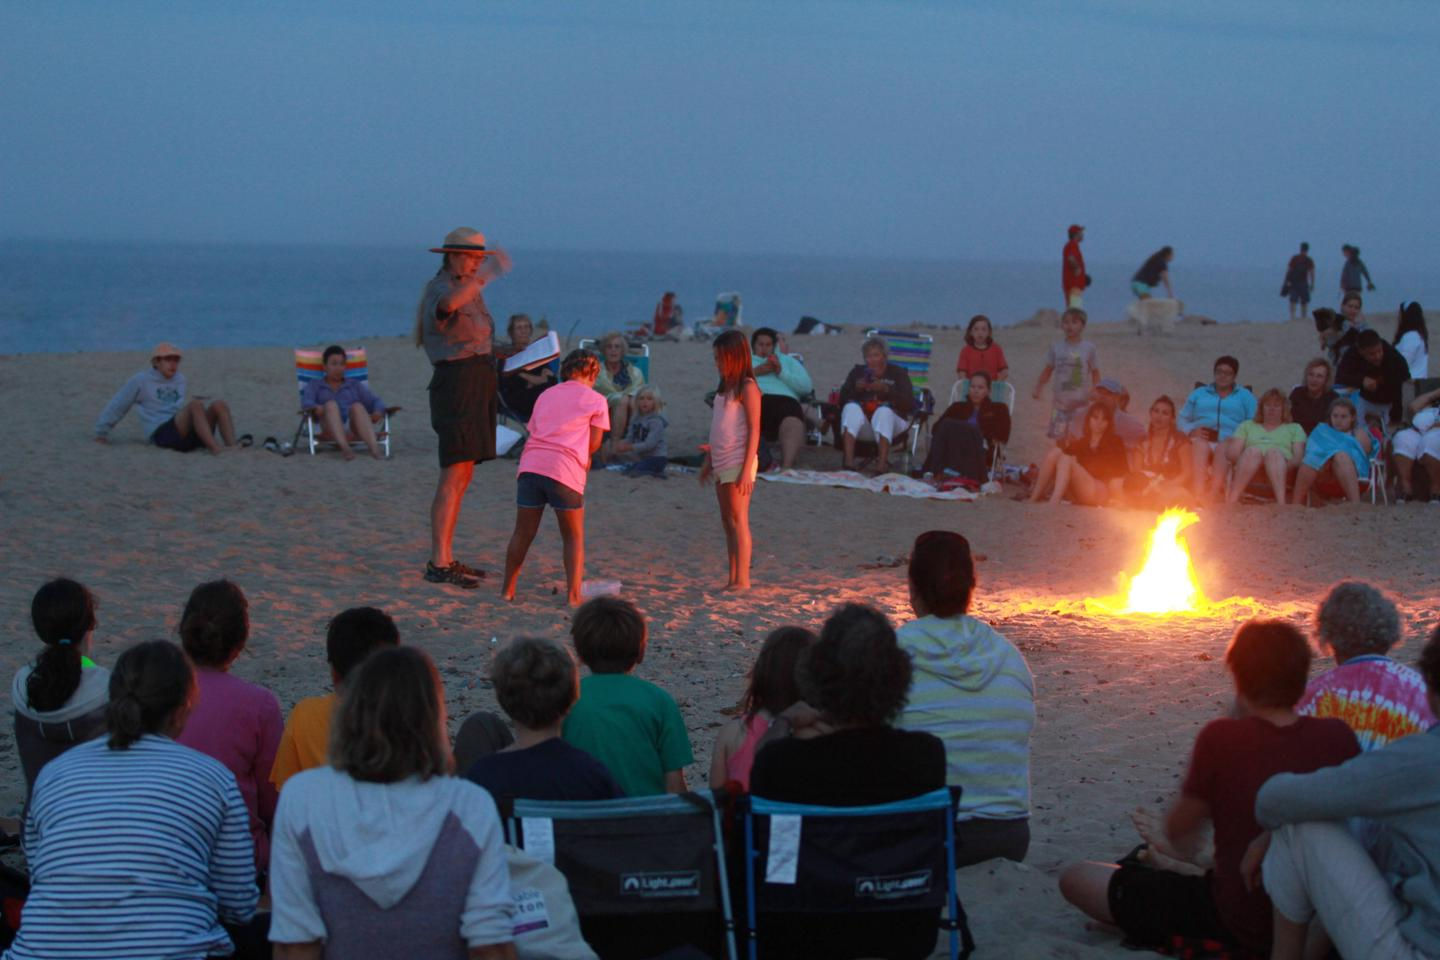 Make sure to participate in one of the many programs that are offered by the Cape Cod National Seashore during your stay!